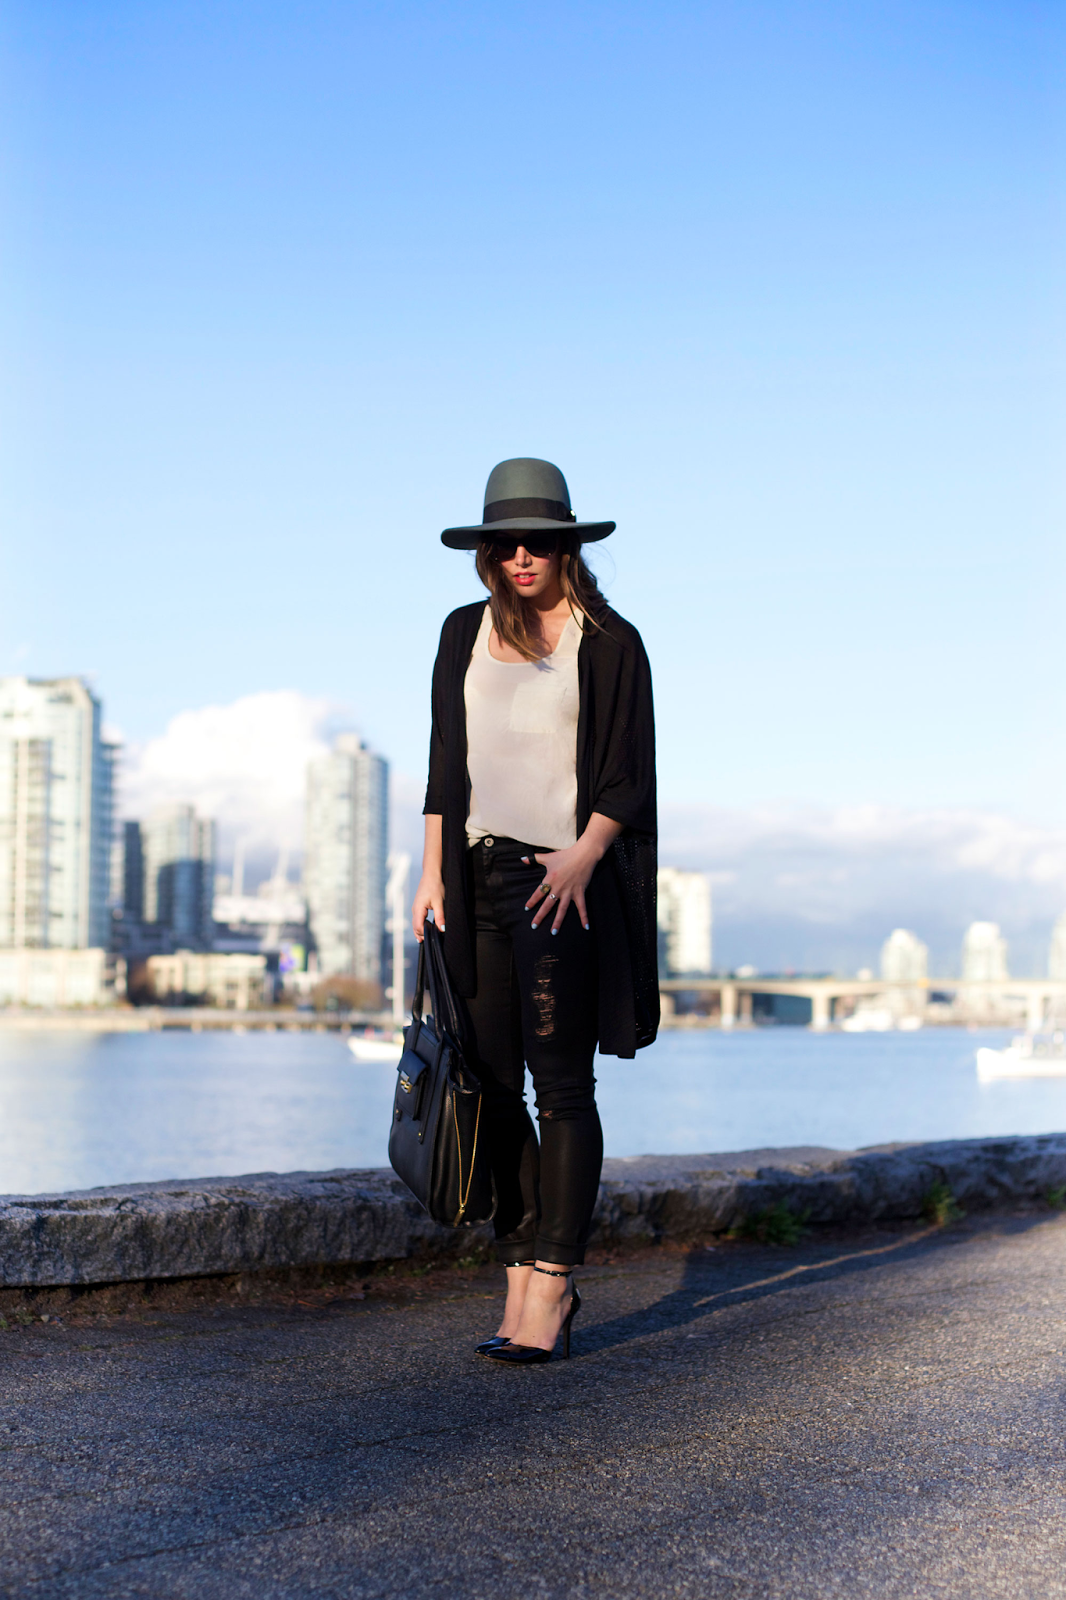 to vogue or bust, vancouver style blog, vancouver fashion blog, vancouver fashion, vancouver style, canadian fashion blog, top canadian fashion blog, top vancouver blogger, alexandra grant, brixton hat, james jeans twiggy skinny jeans, left on houston cardigan, joe fresh silk tank top, kv bijou ring, brooklyn designs ring, sole society heels, 3.1 phillip lim for target bag, vancouver seawall